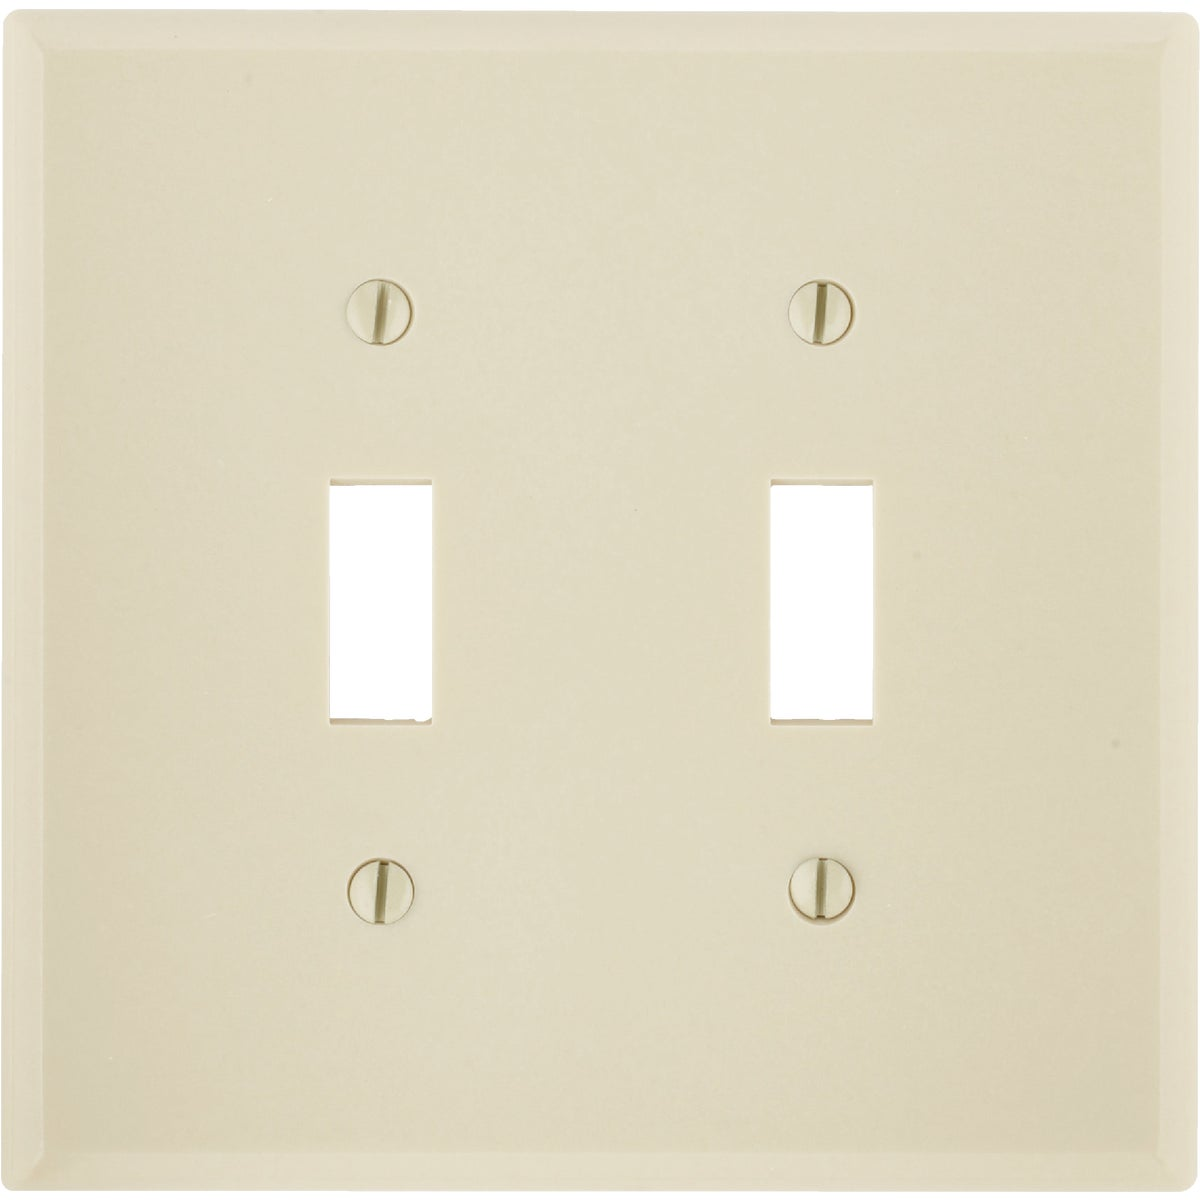 IV 2-TOGGLE WALL PLATE - 86009 by Leviton Mfg Co